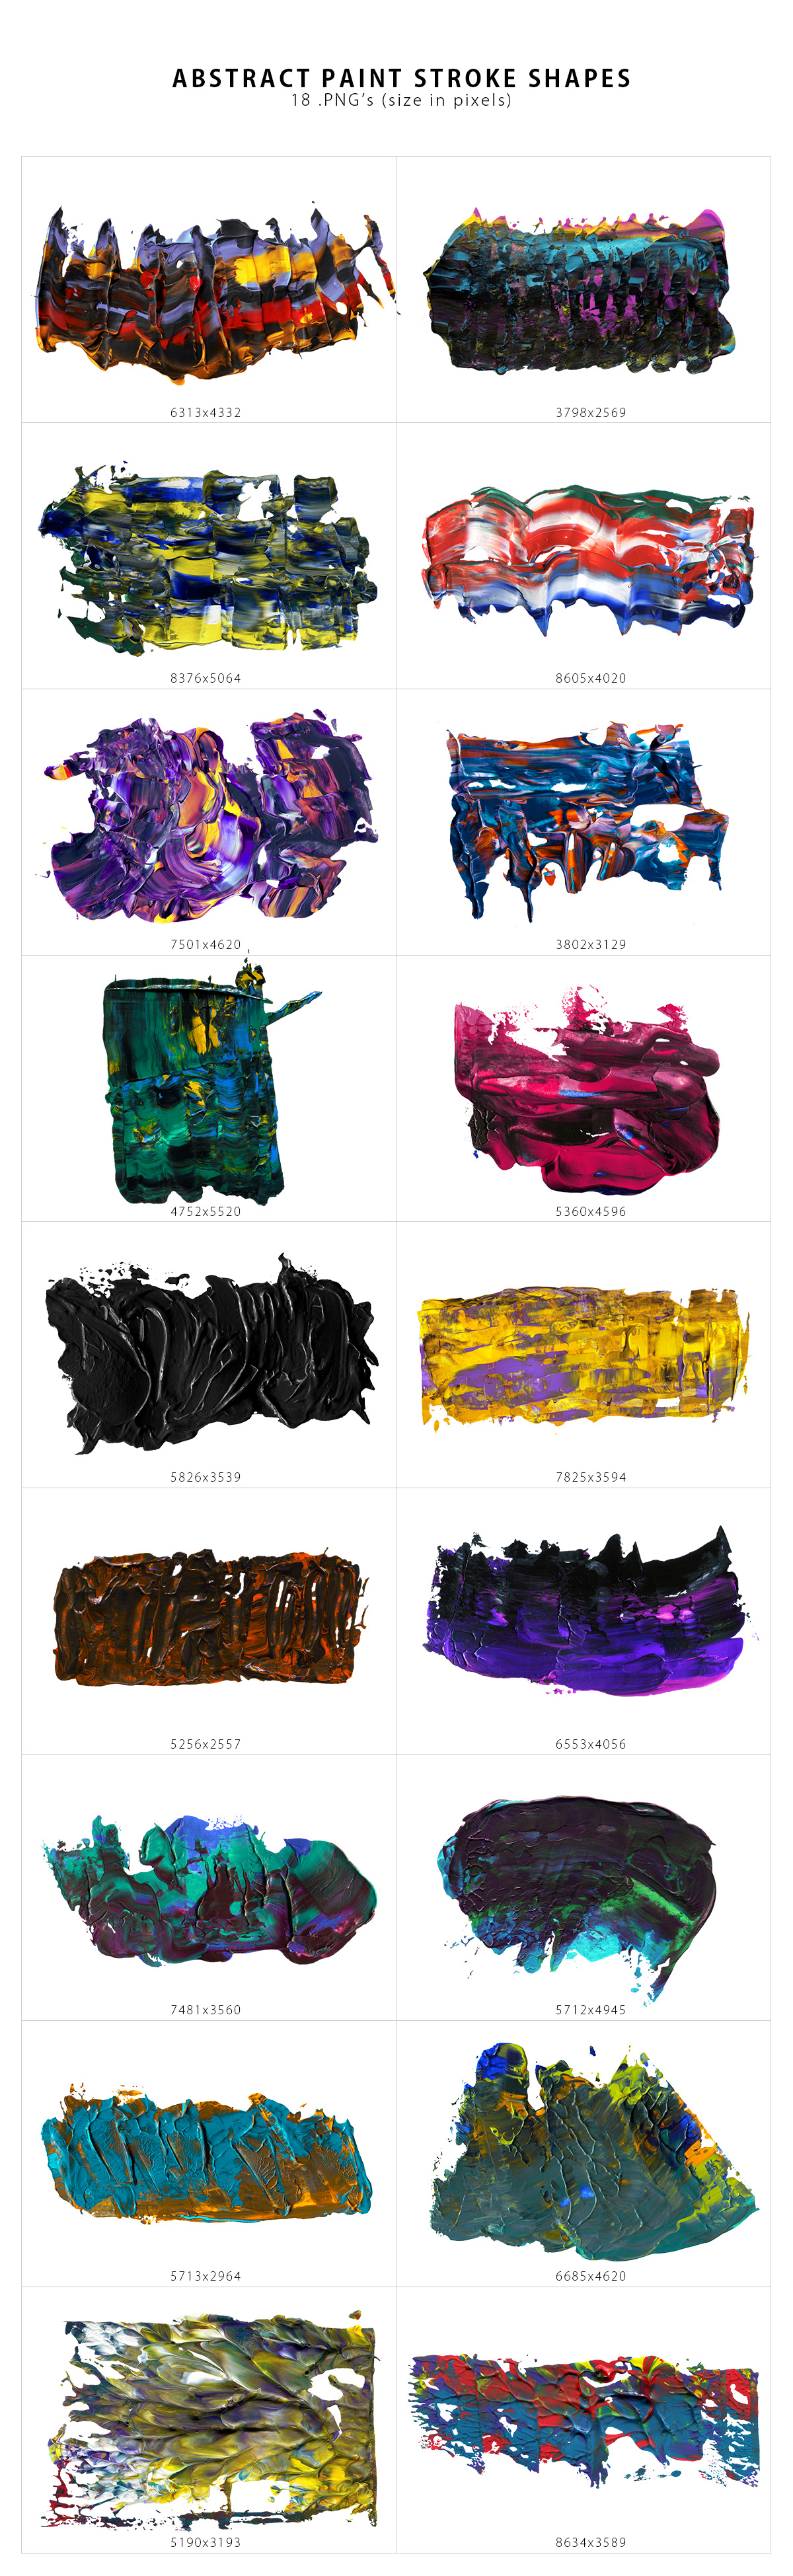 Abstract Paint Shapes example image 6